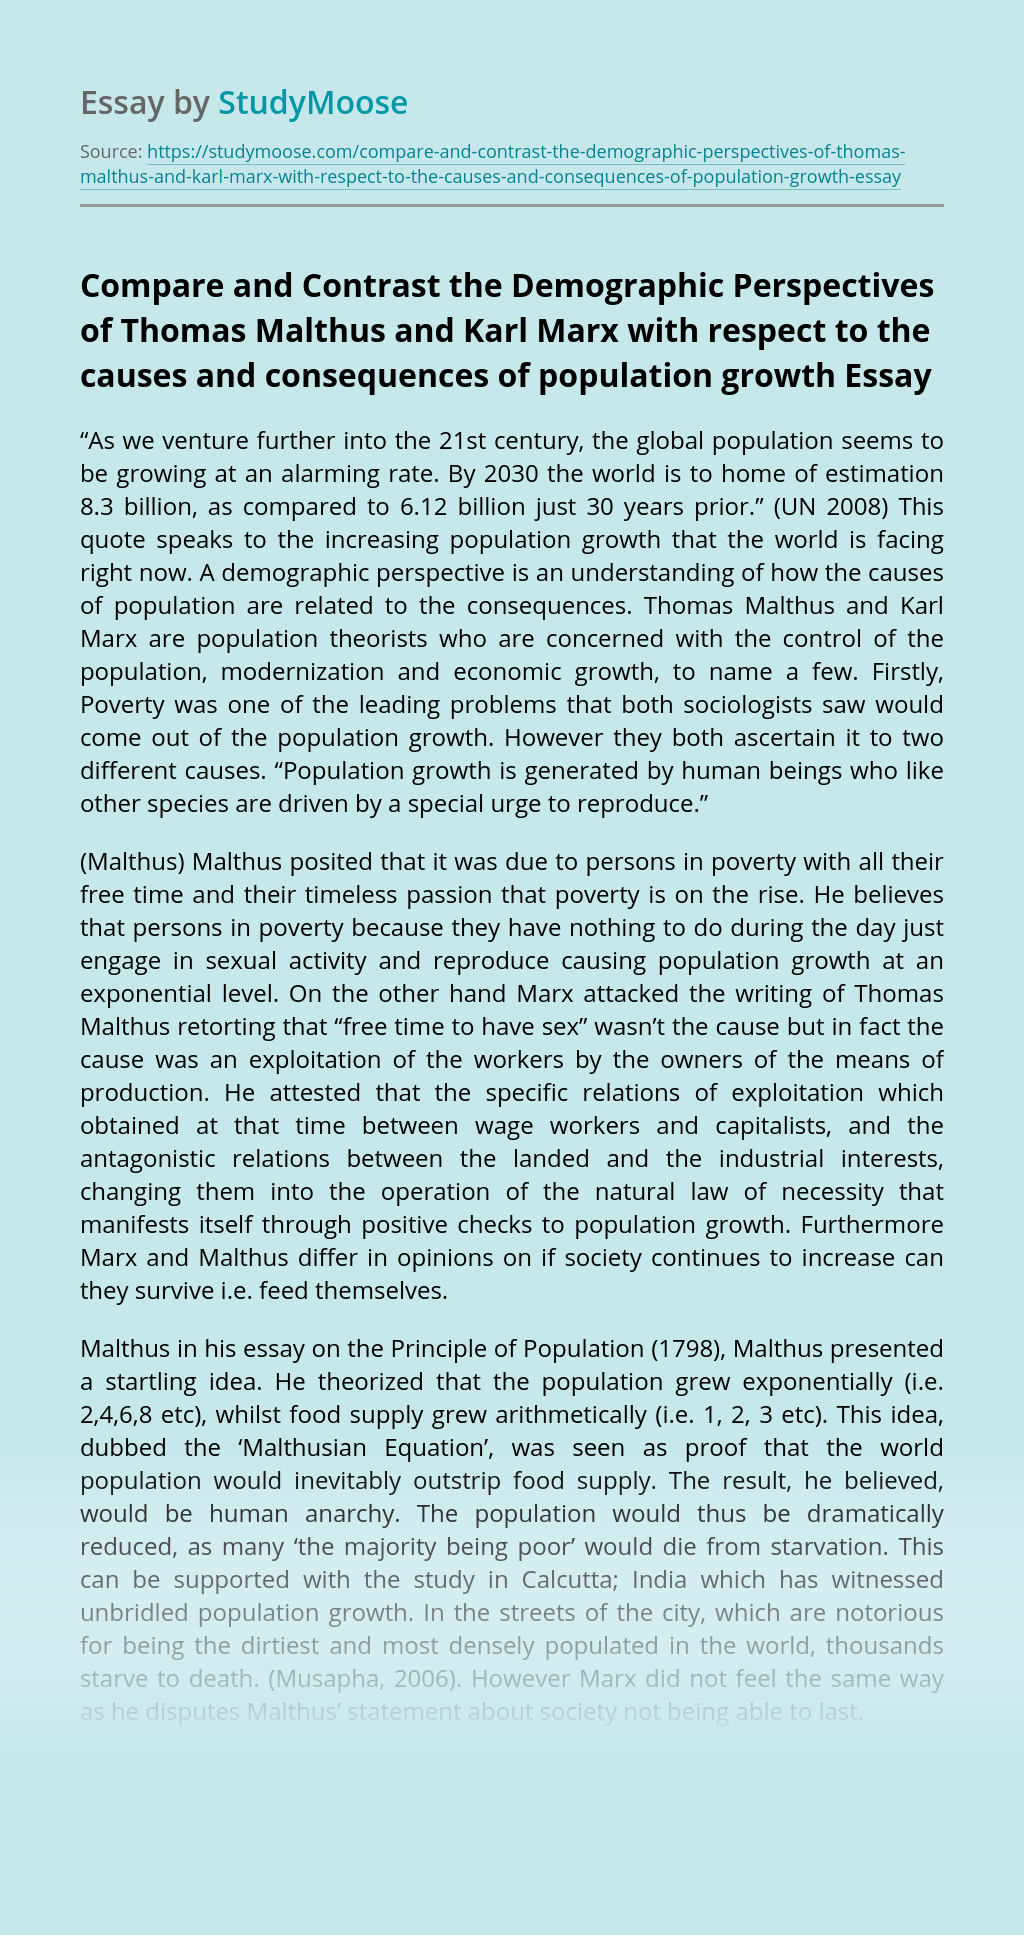 Compare and Contrast the Demographic Perspectives of Thomas Malthus and Karl Marx with respect to the causes and consequences of population growth